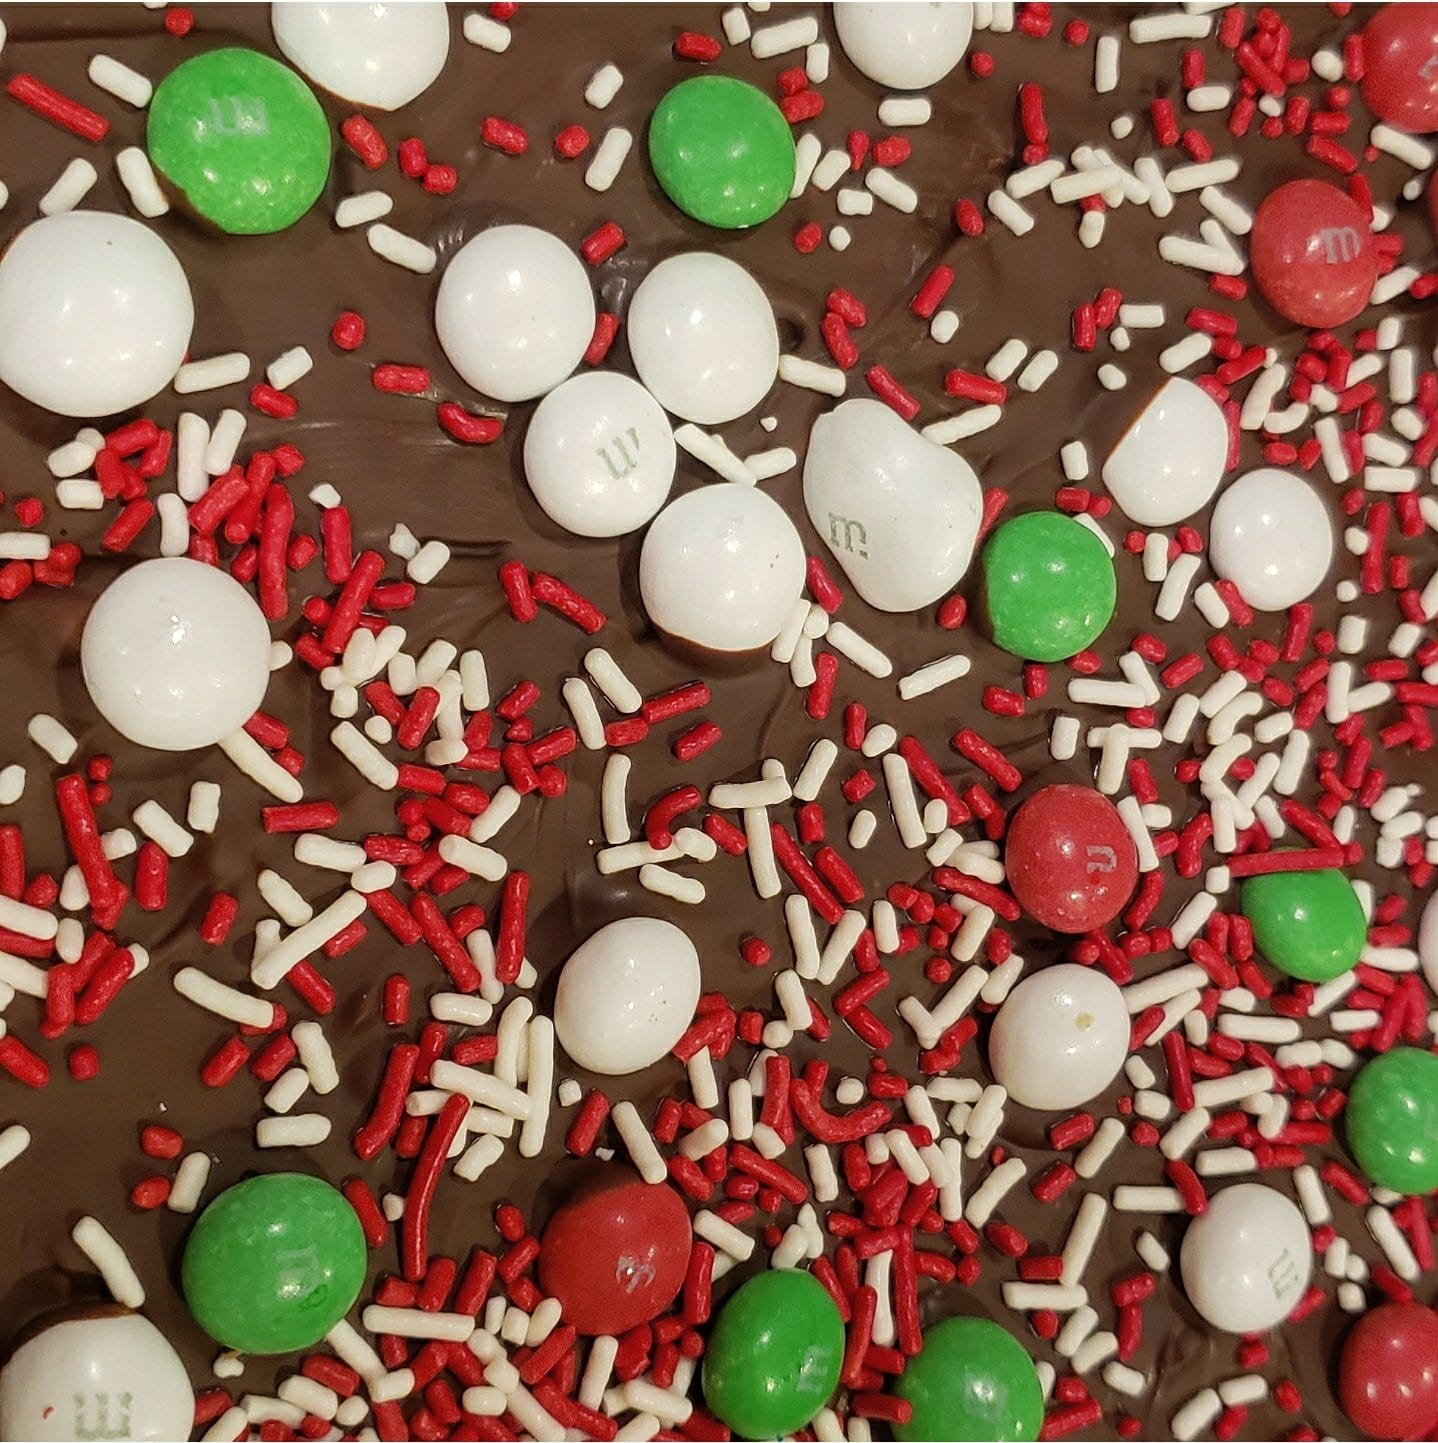 Christmas crack made with saltines, butter, brown sugar, melted chocolate and topped with mint flavored m & ms